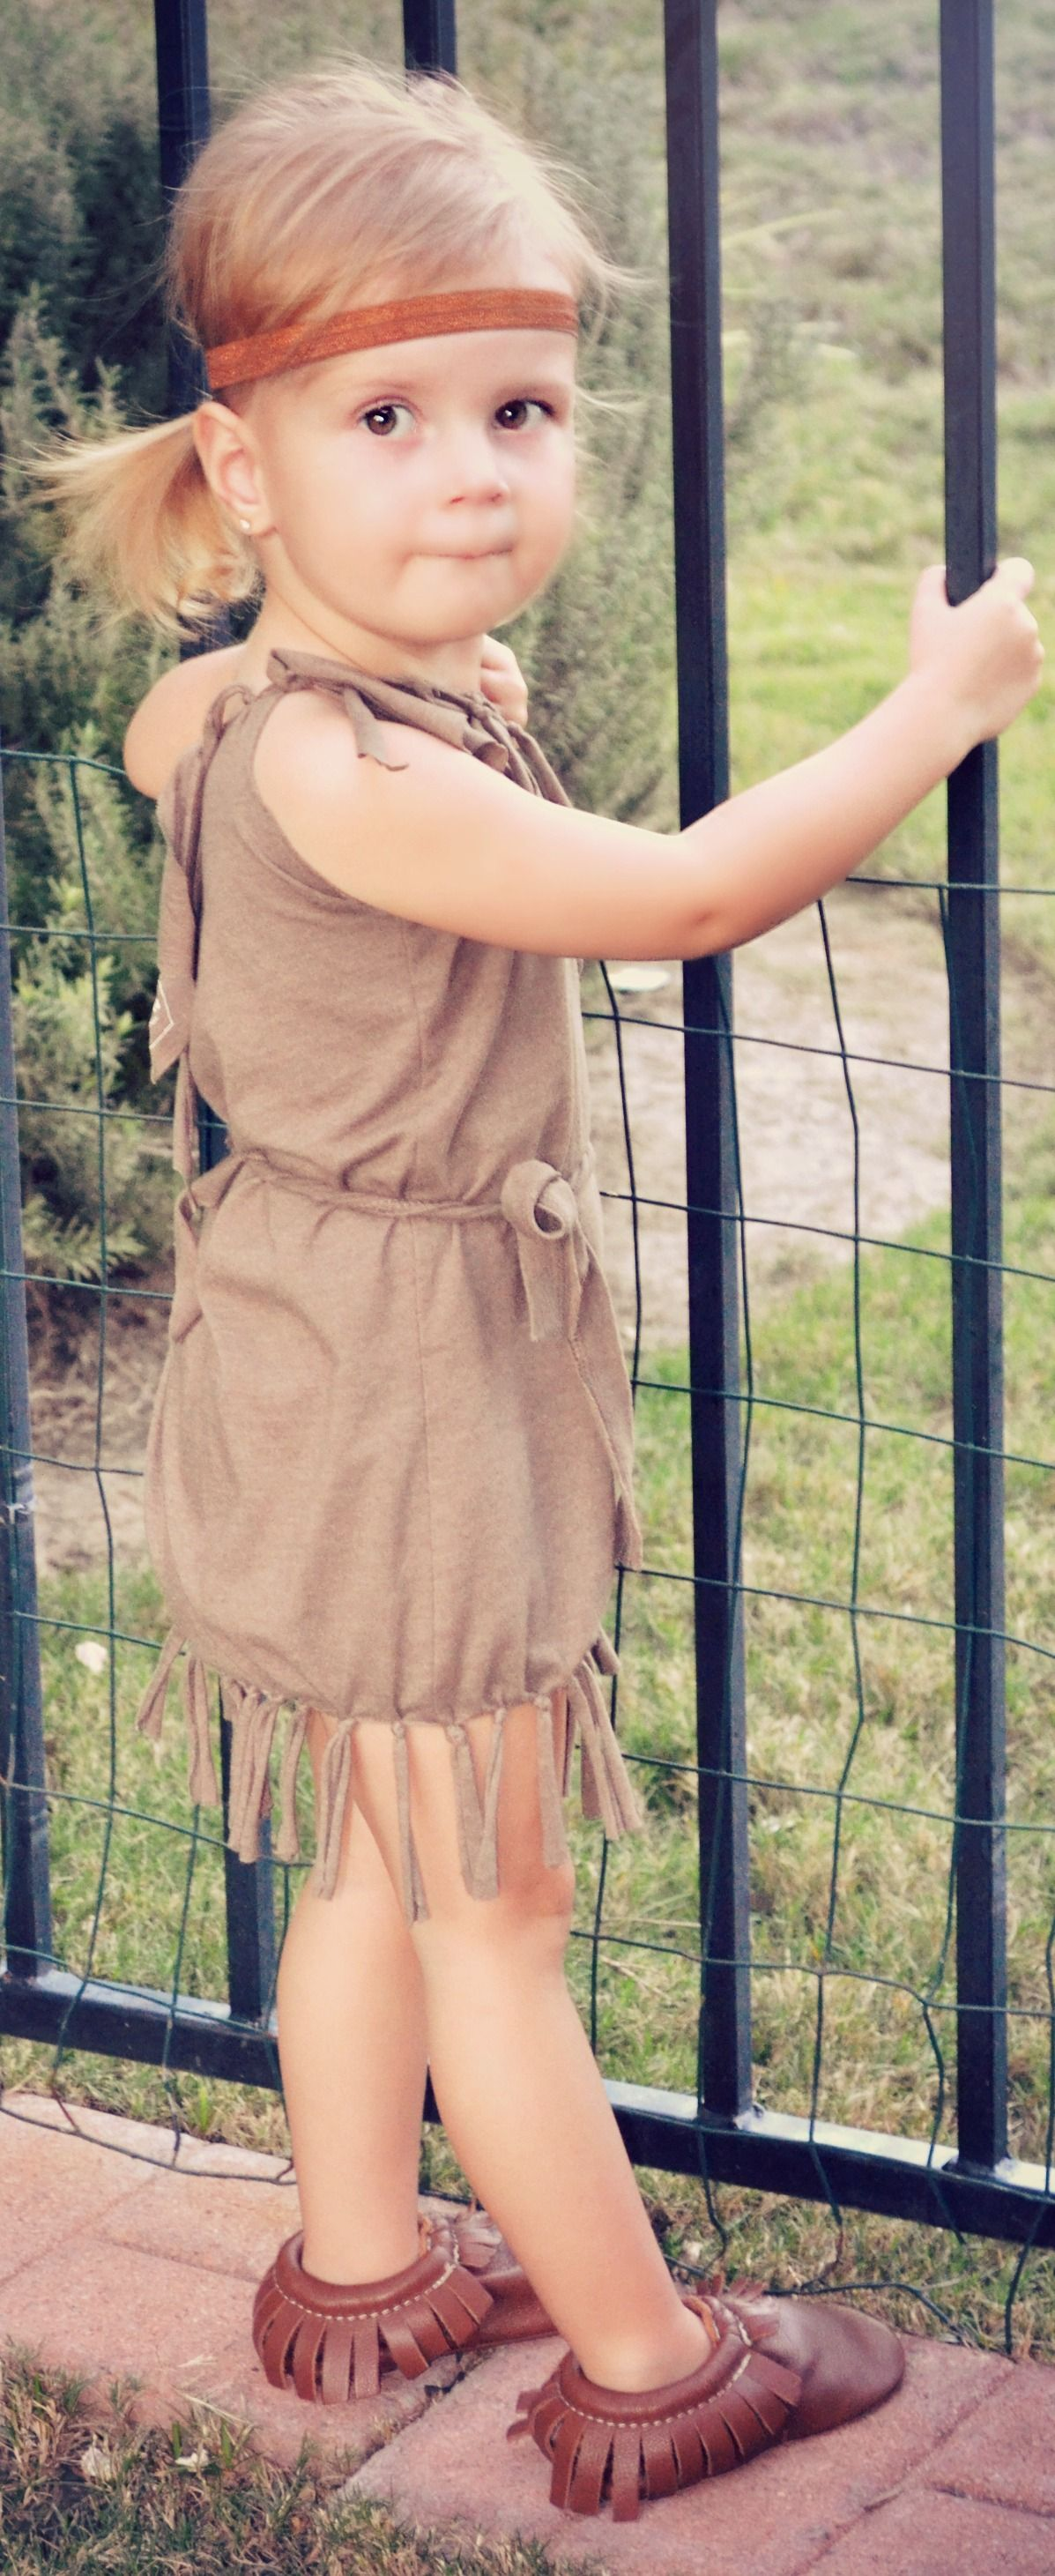 Homemade disney princess costumes for girls pocahontas just add homemade disney princess costumes for girls pocahontas just add blue necklace solutioingenieria Gallery